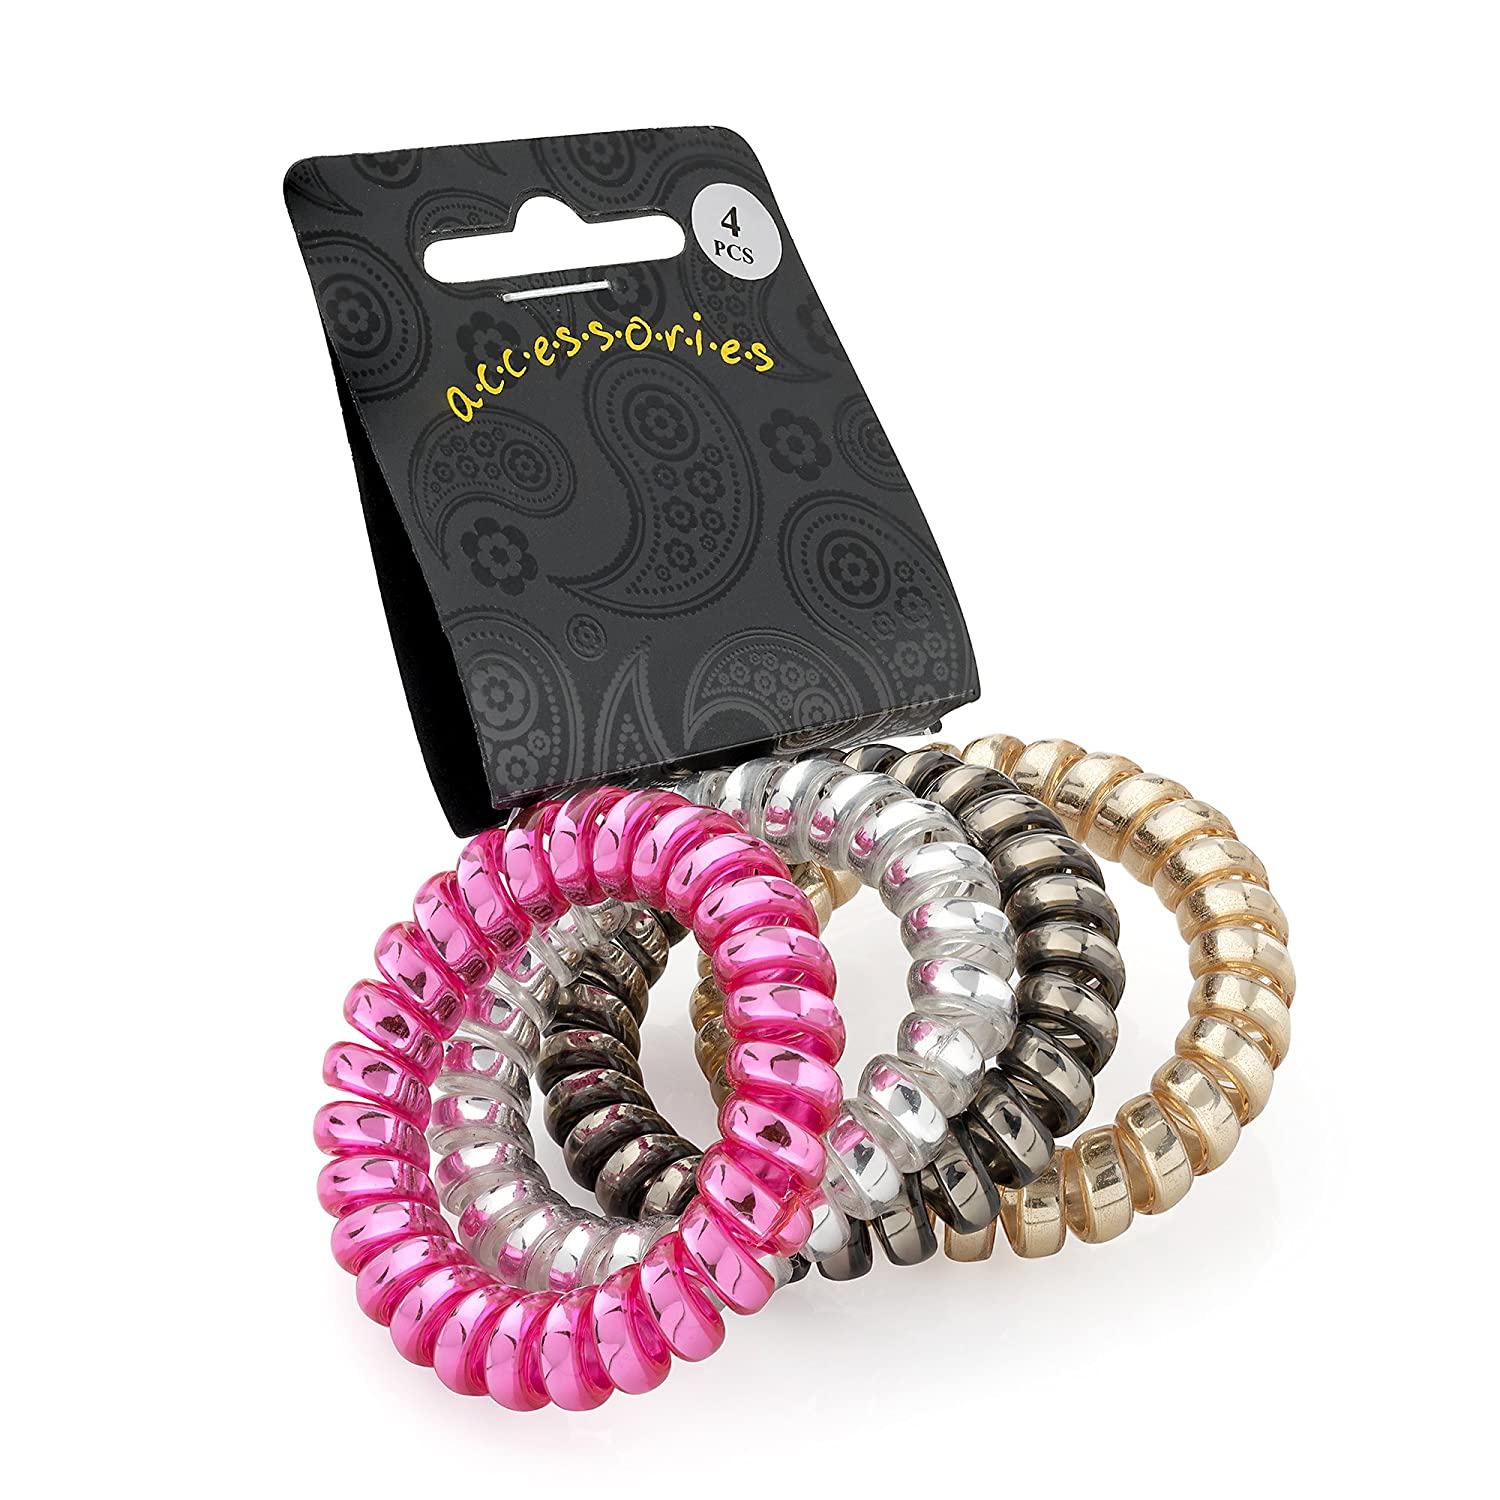 Set of 4 Metallic Telephone Cord Coil Twist Hair Elastics Bobbles Bands Pritties Accessories PRH03182